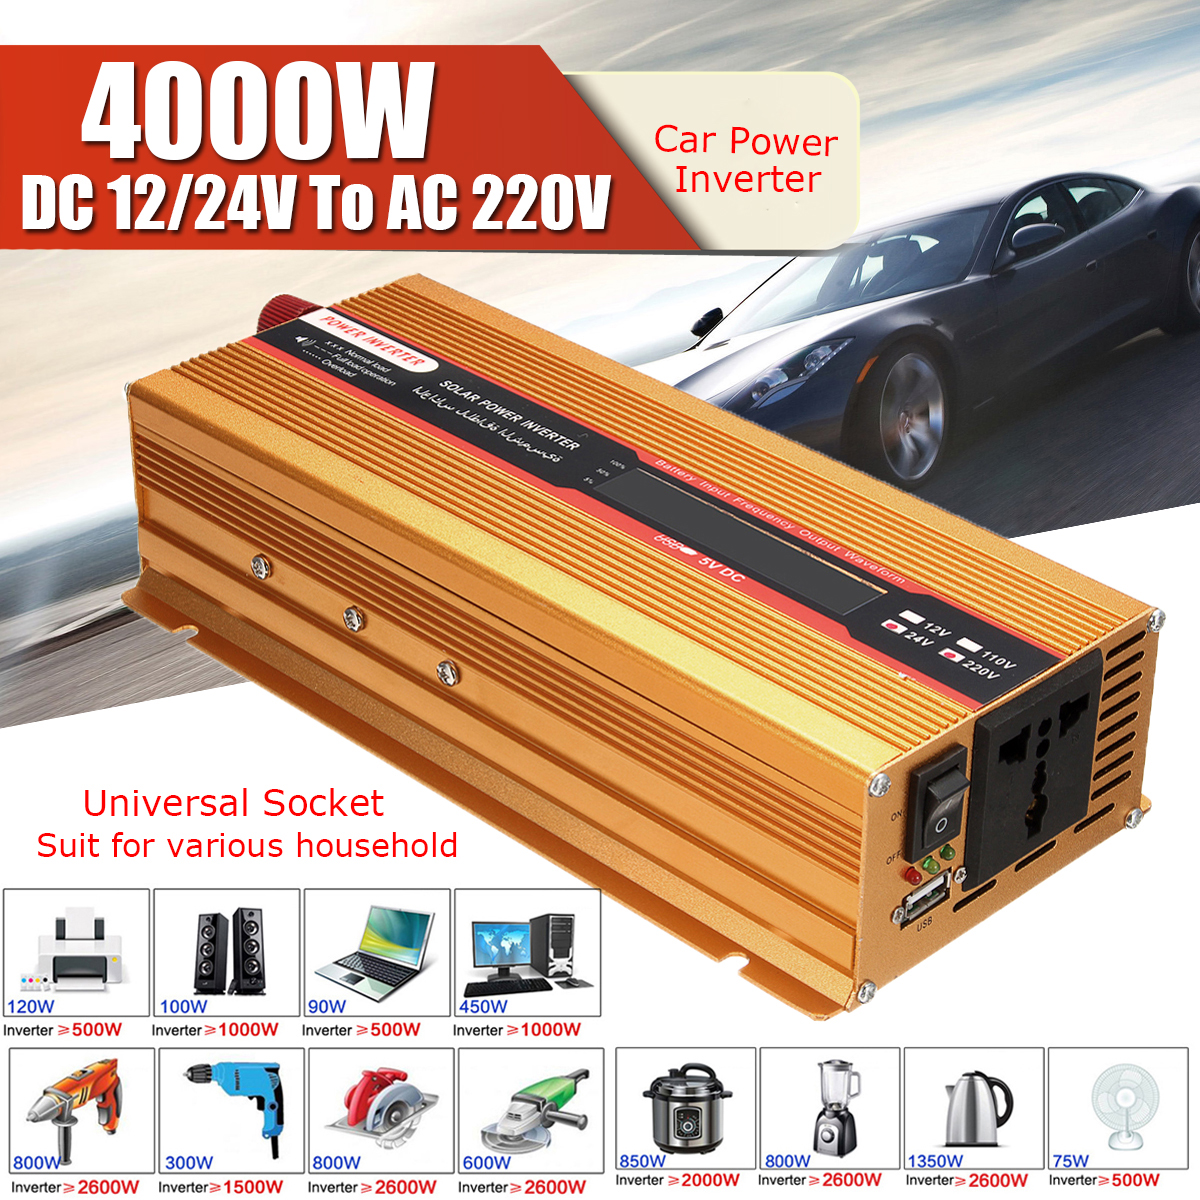 12/24V To AC 220/110V Car Power Inverter PEAK 4000W USB Modified Sine Wave Converter Voltage Transformer for Various Appliances peak 4000w 12 24v to ac 220 110v car power inverter usb modified sine wave converter voltage transformer for various appliances